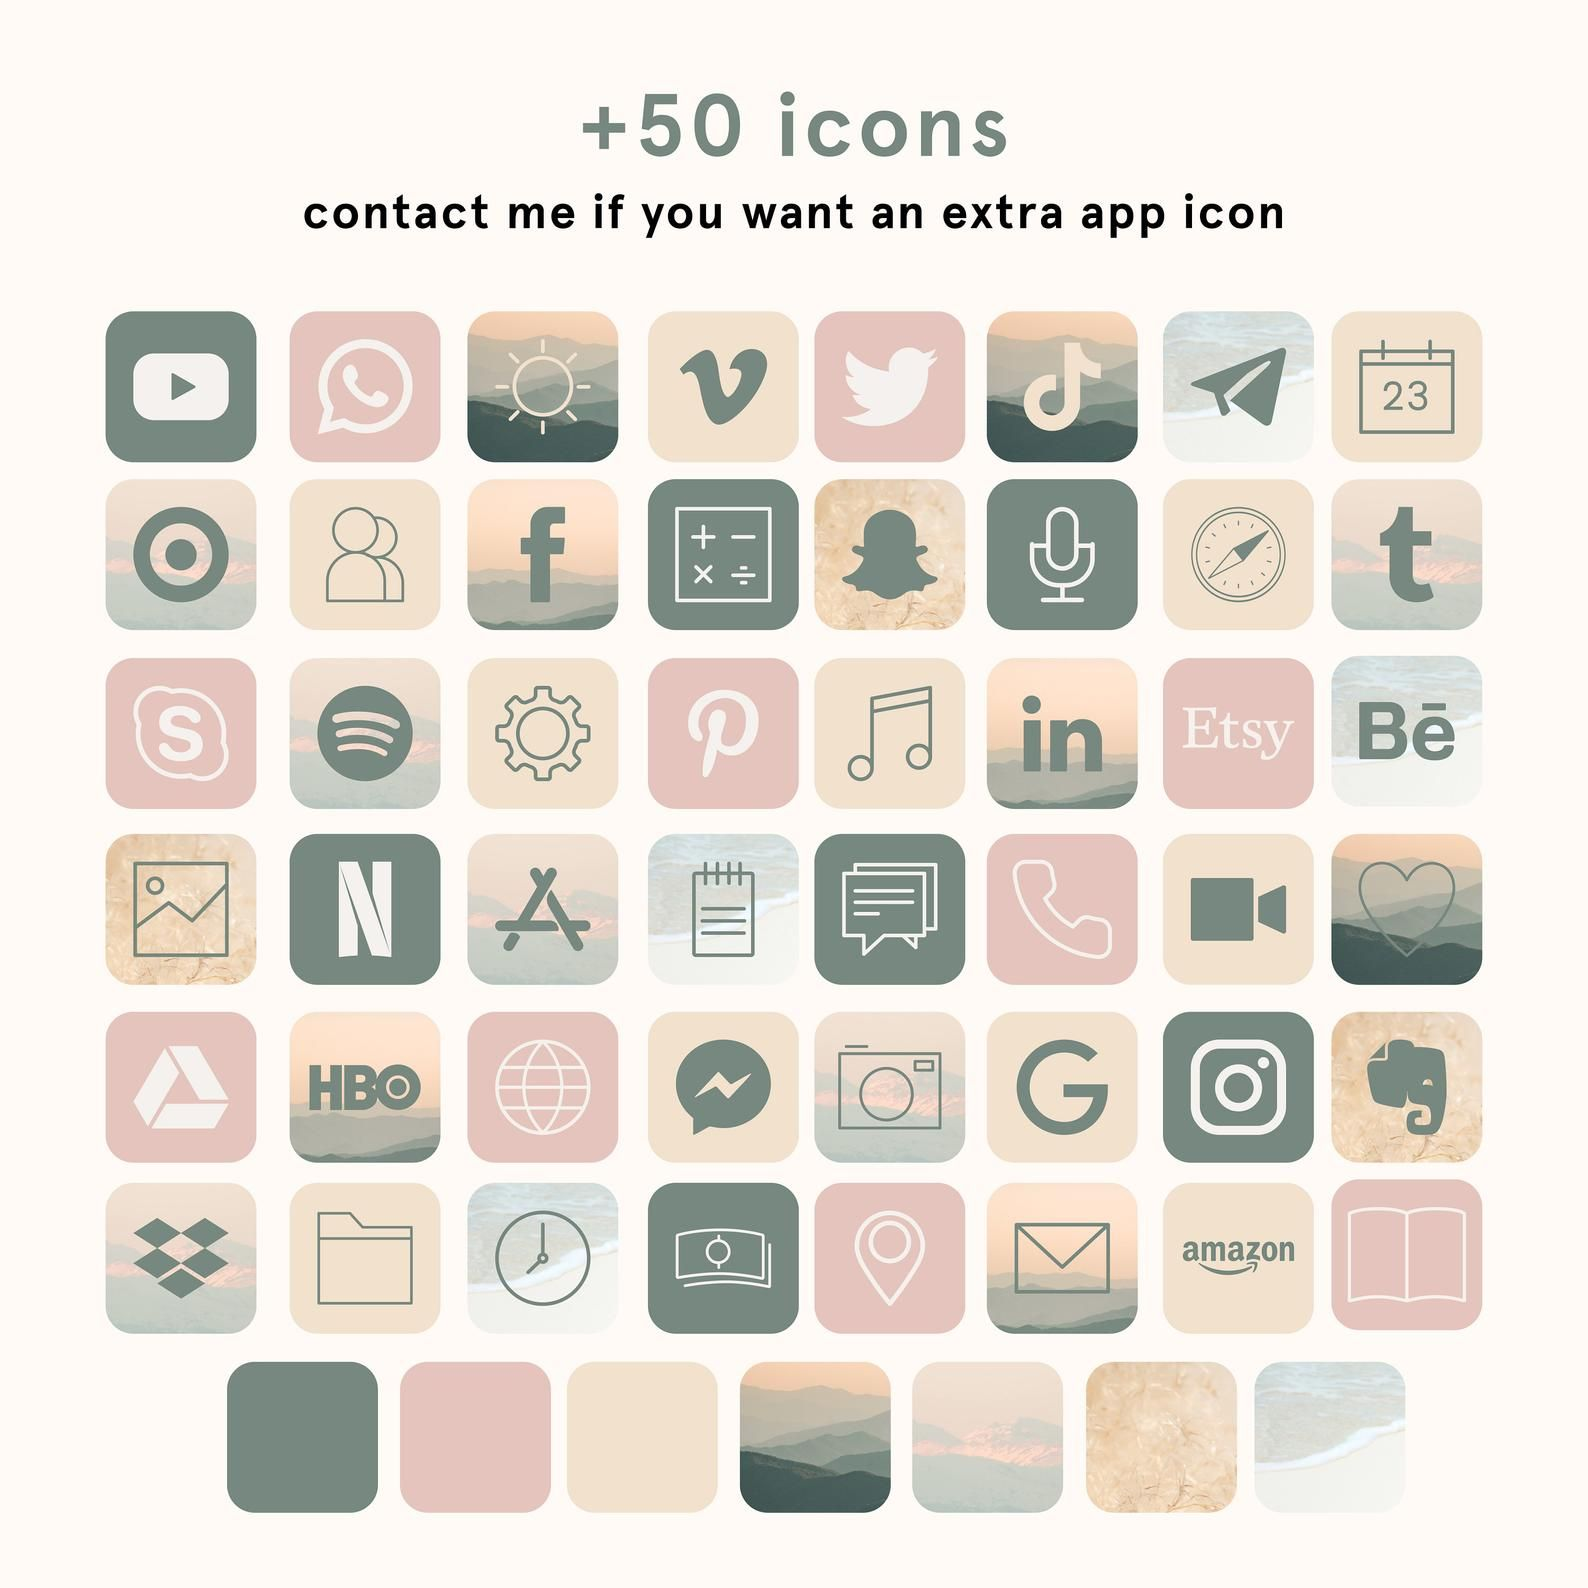 Ios App Icon Bundle App Cover Iphone Aesthetic App Icons Cover App Icons Ios Iphone Organisation Ios14 App Icons 50 App Pack Ios App Icon App Icon App Covers Aesthetic app icons are hugely popular these days thanks to their ability to completely change the look and feel of your home screen, more so not only that, but you also have widgets too on ios 14, which is awesome. ios app icon bundle app cover iphone